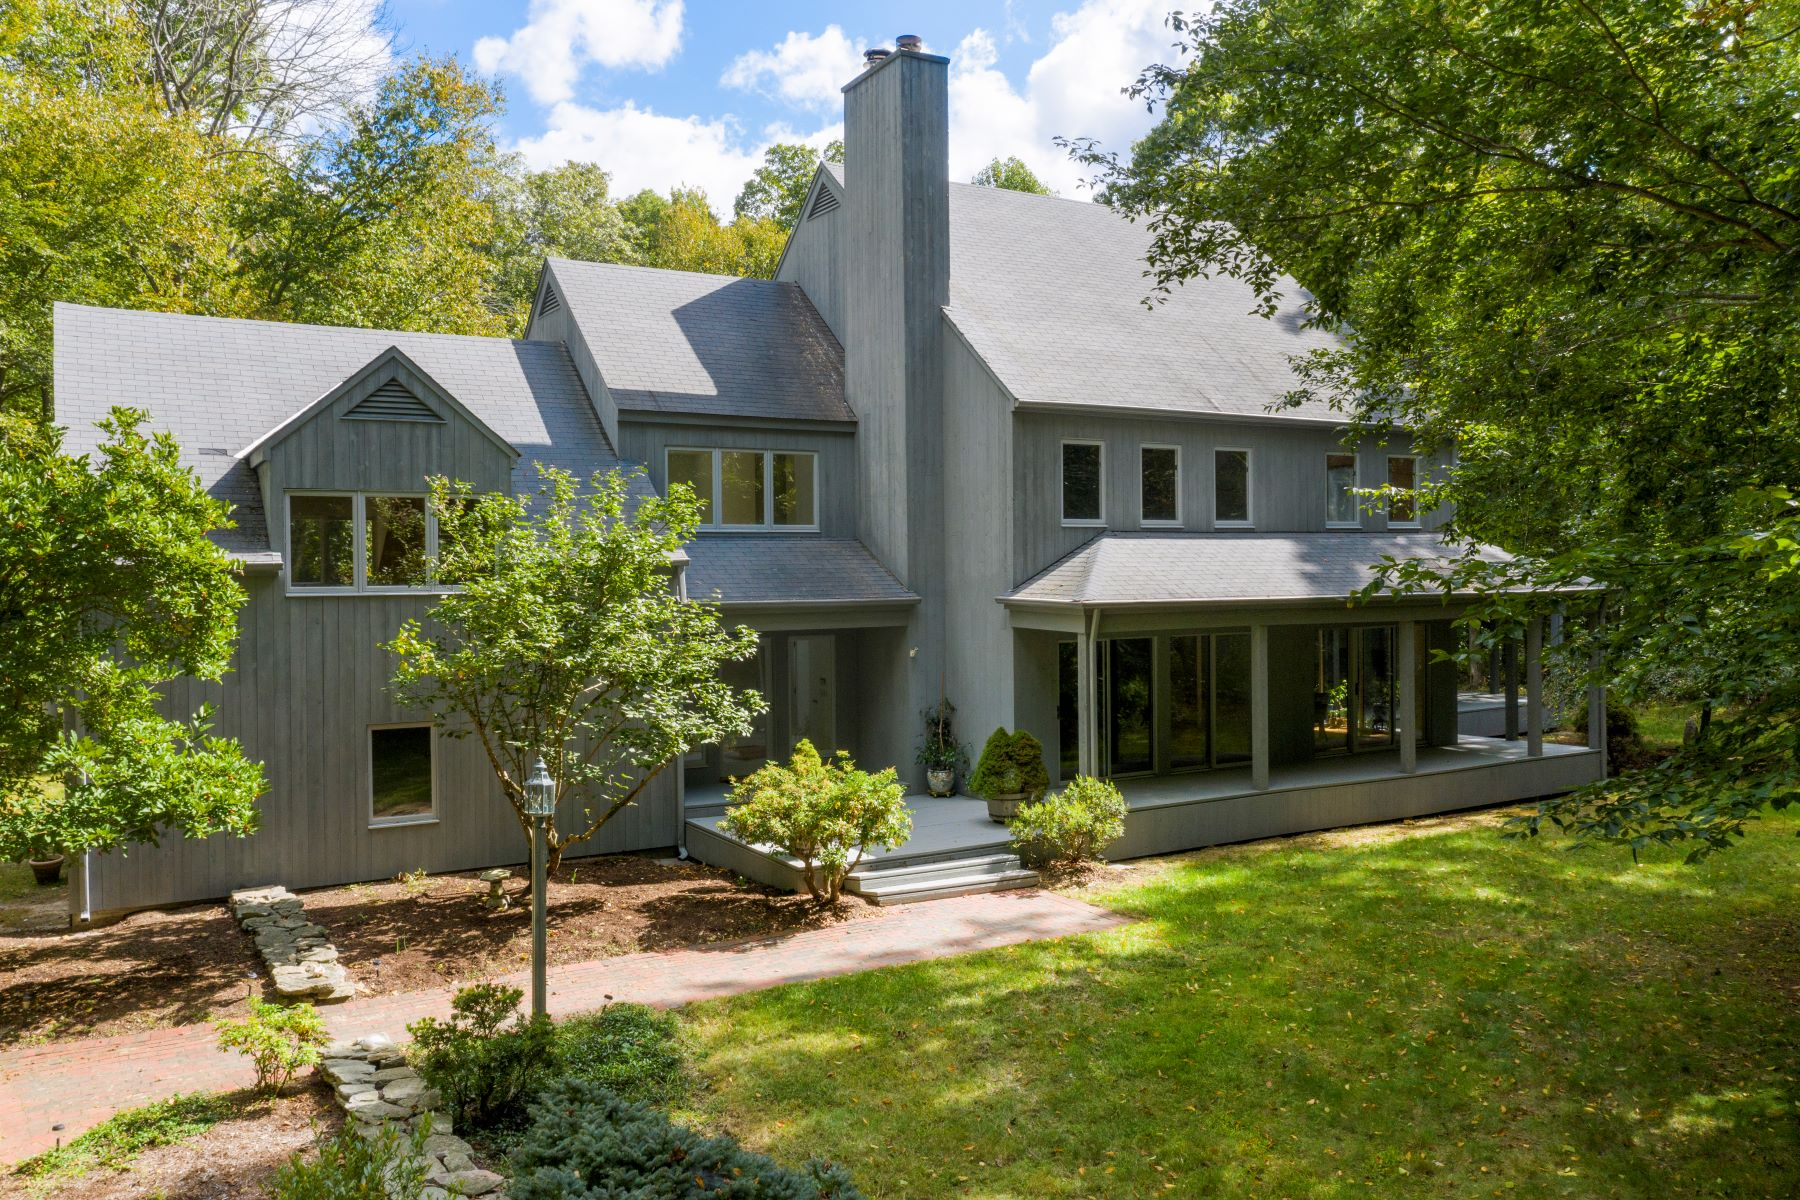 Single Family Homes for Active at Private Contemporary on Nearly 5 Acres! 389-1 Grassy Hill Road Lyme, Connecticut 06371 United States